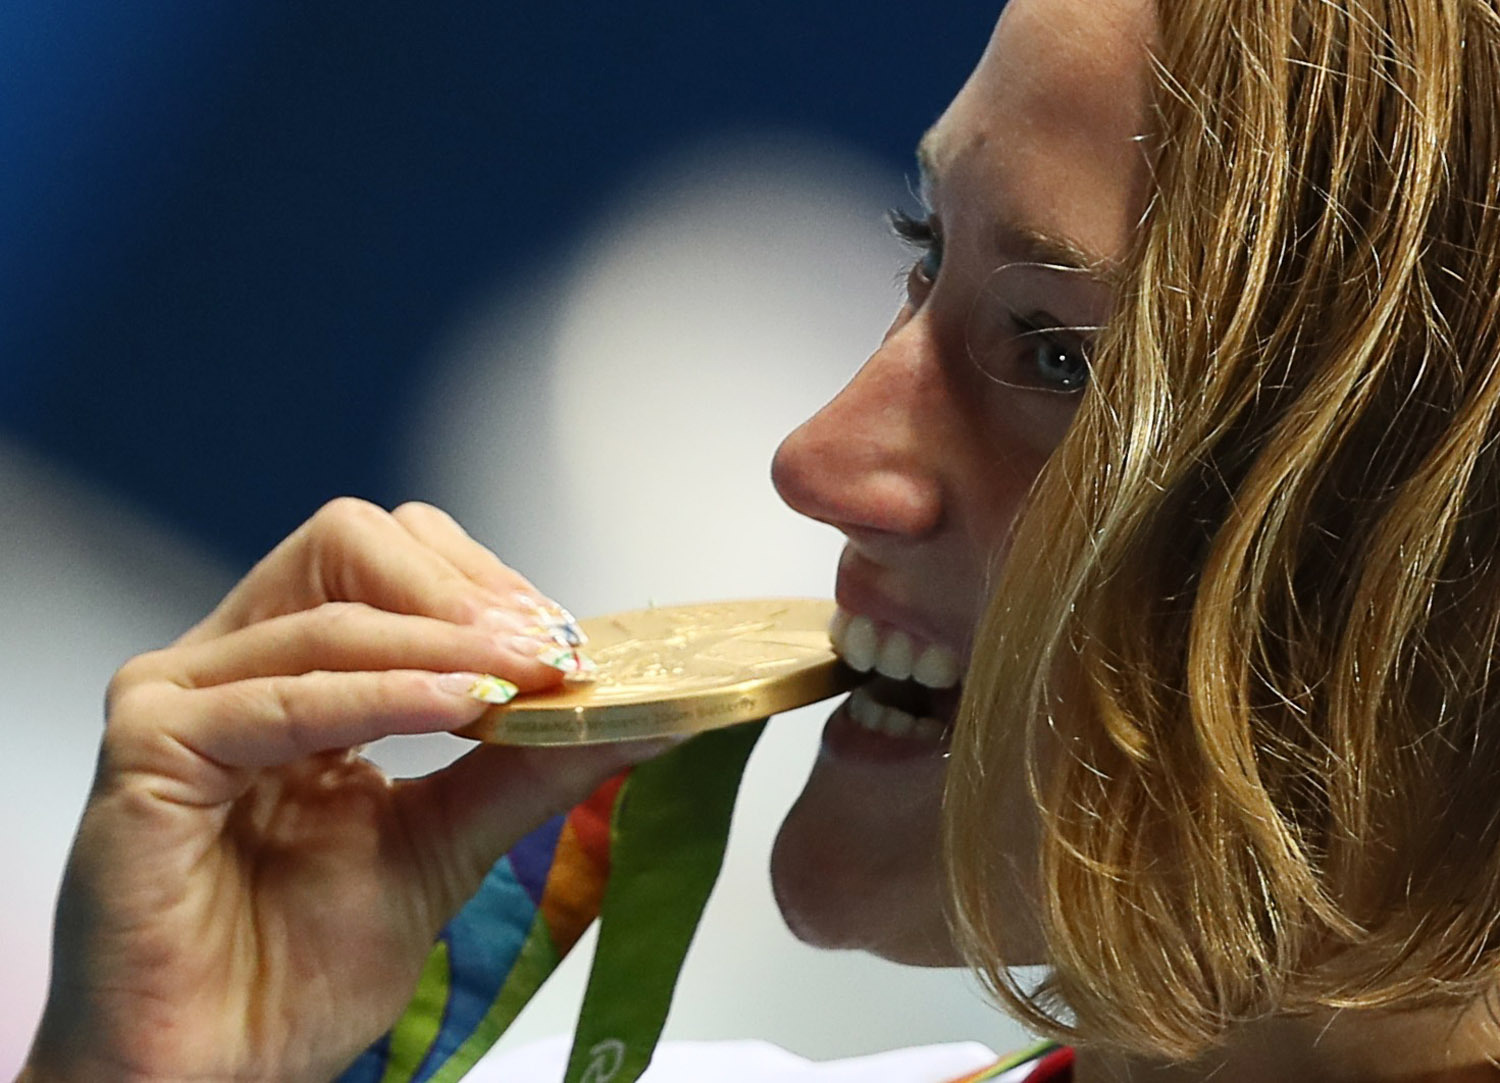 Mireia Belmonte of Spain poses with her gold medal after winning the women's 200-meter butterfly on Wednesday at the 2016 Rio de Janeiro Olympics.   | REUTERS